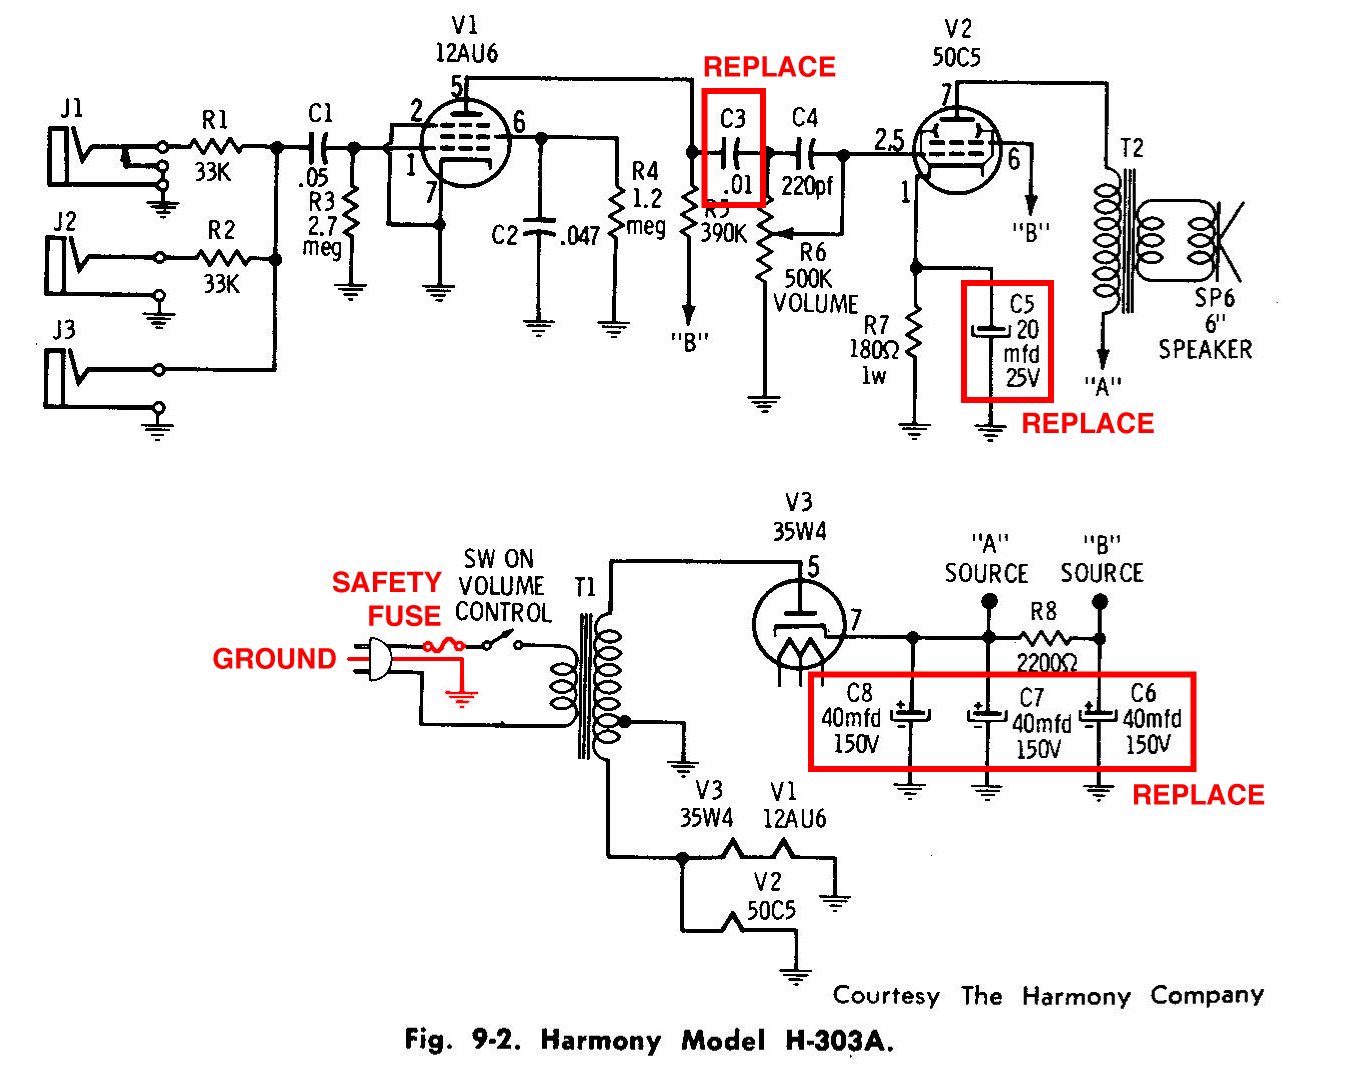 La4440 Stereo  lifier Circuit besides  besides Base For Car Stereo   Wiring Diagram further Dodge Ram 1500 Van 2010 Radio Wiring Diagram additionally Showthread. on car stereo amplifier wiring diagram